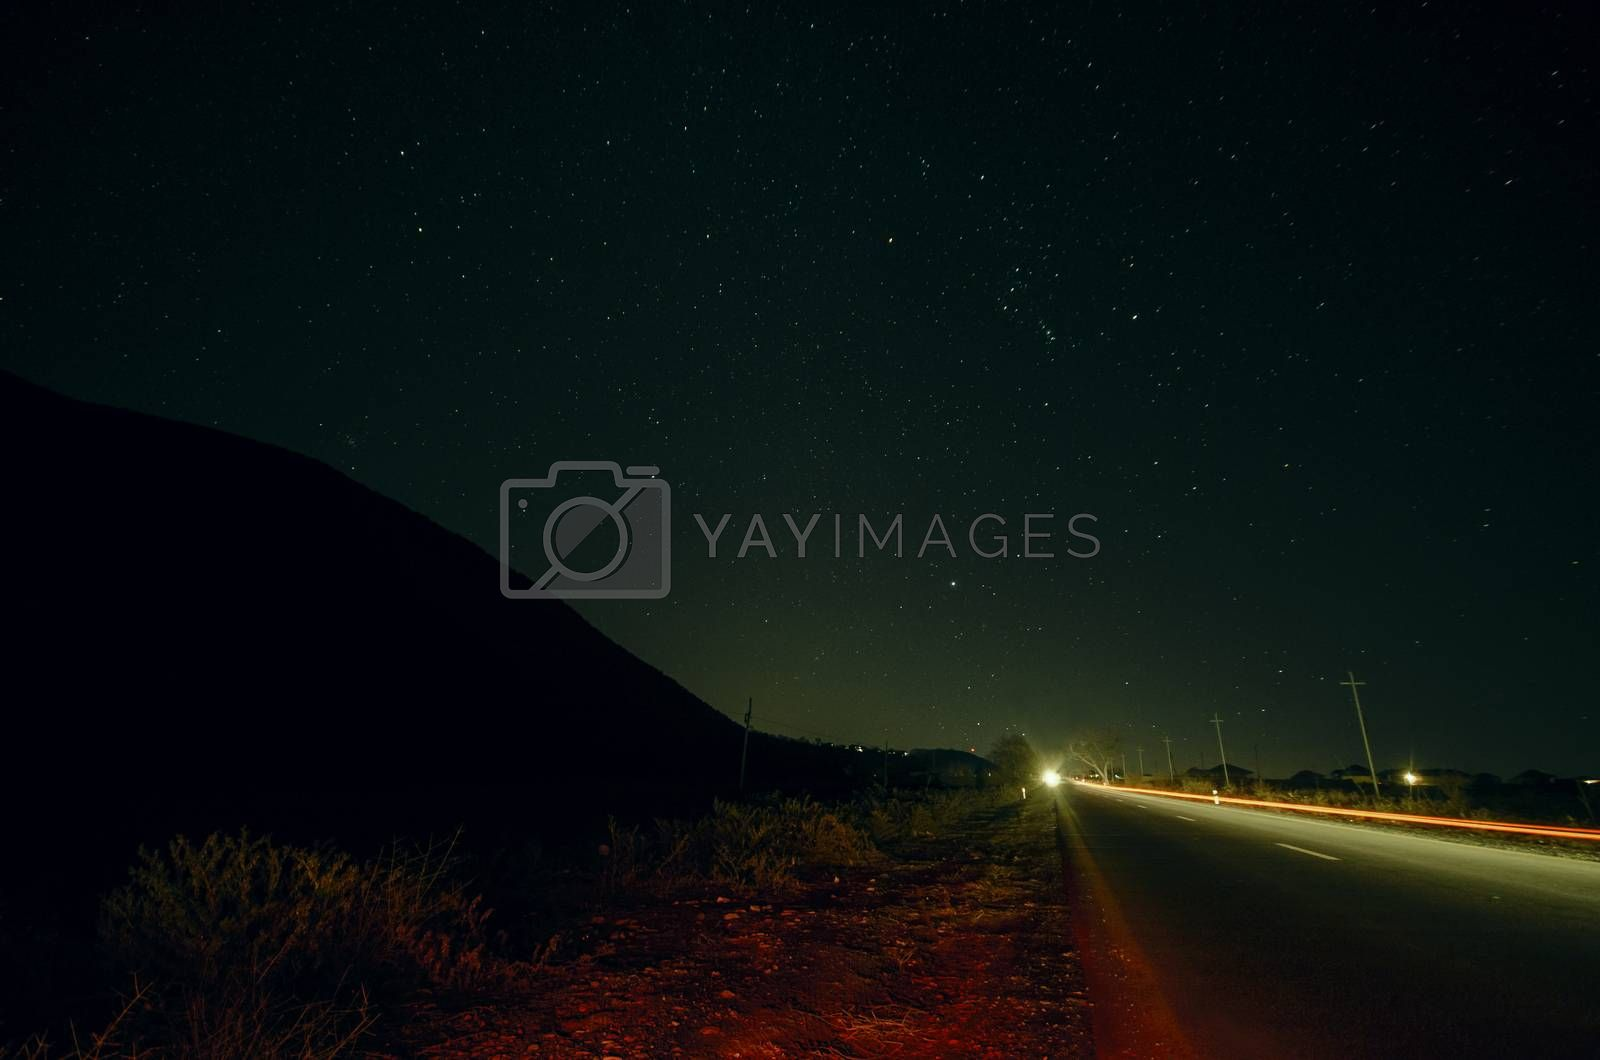 Beautiful night landscape of stars at sky and mountain silhouette near road with car trails. Road in the mountains under a starry gyres. Azerbaijan, Big Caucasus, Sheki